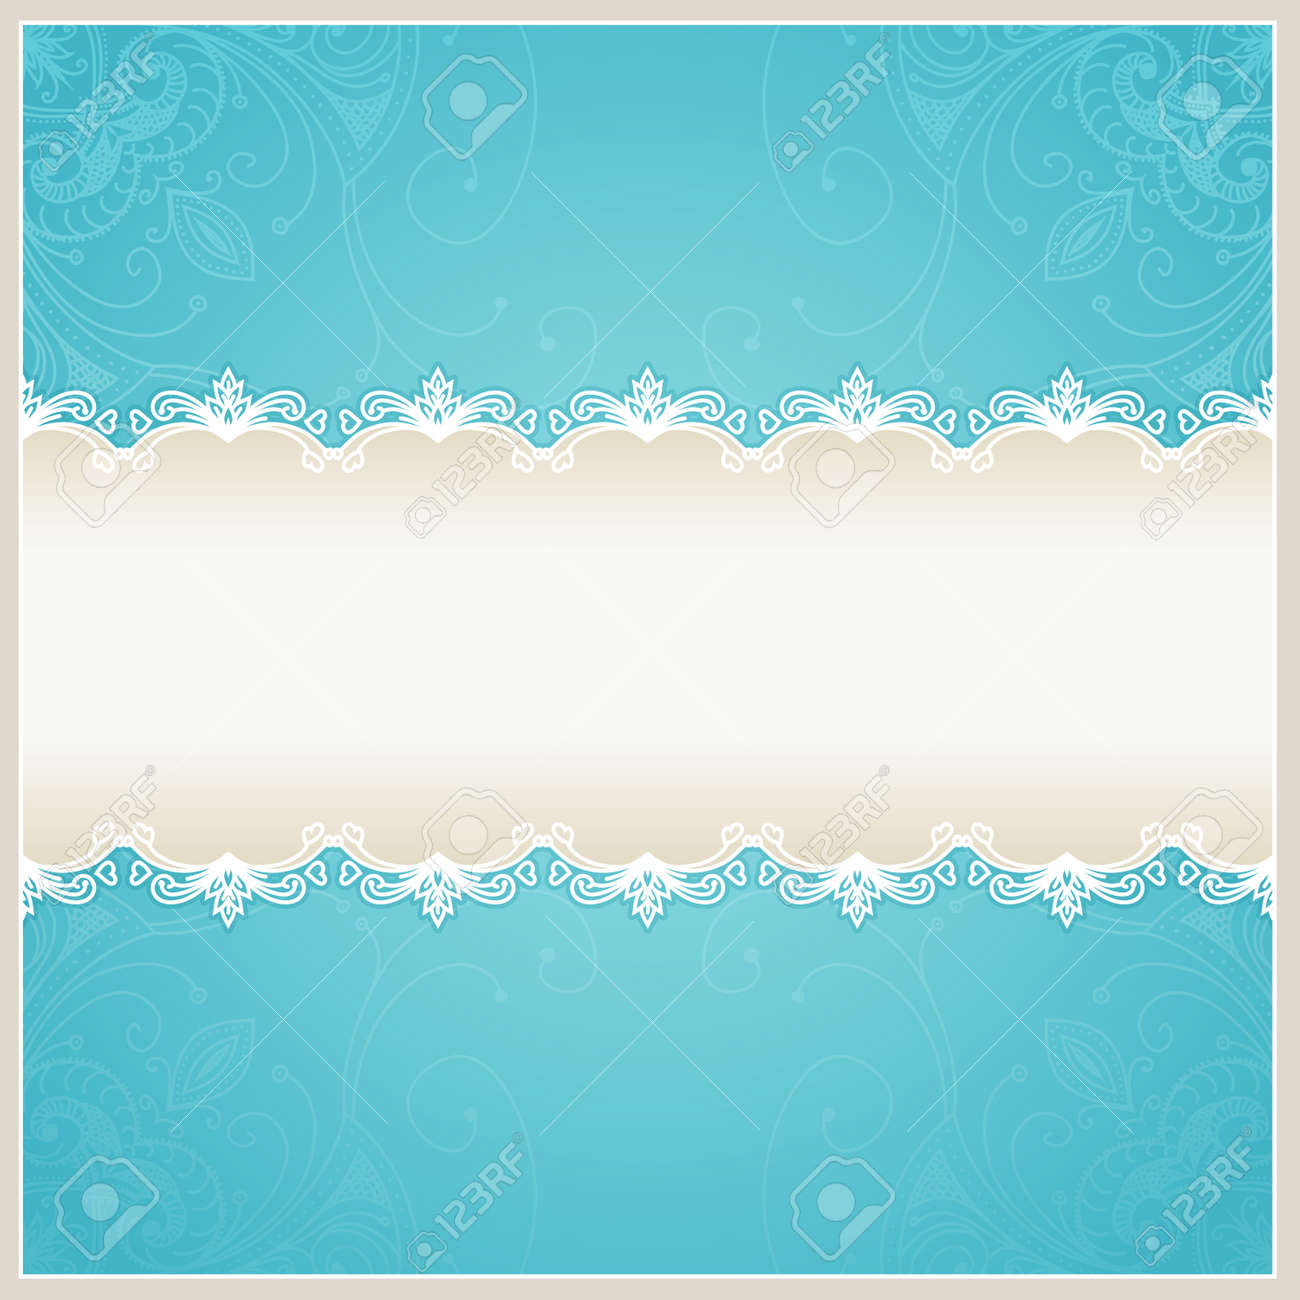 Floral Wedding Background Blue Design Template Can Be Used For Stock Photo Picture And Royalty Free Image Image 28200431